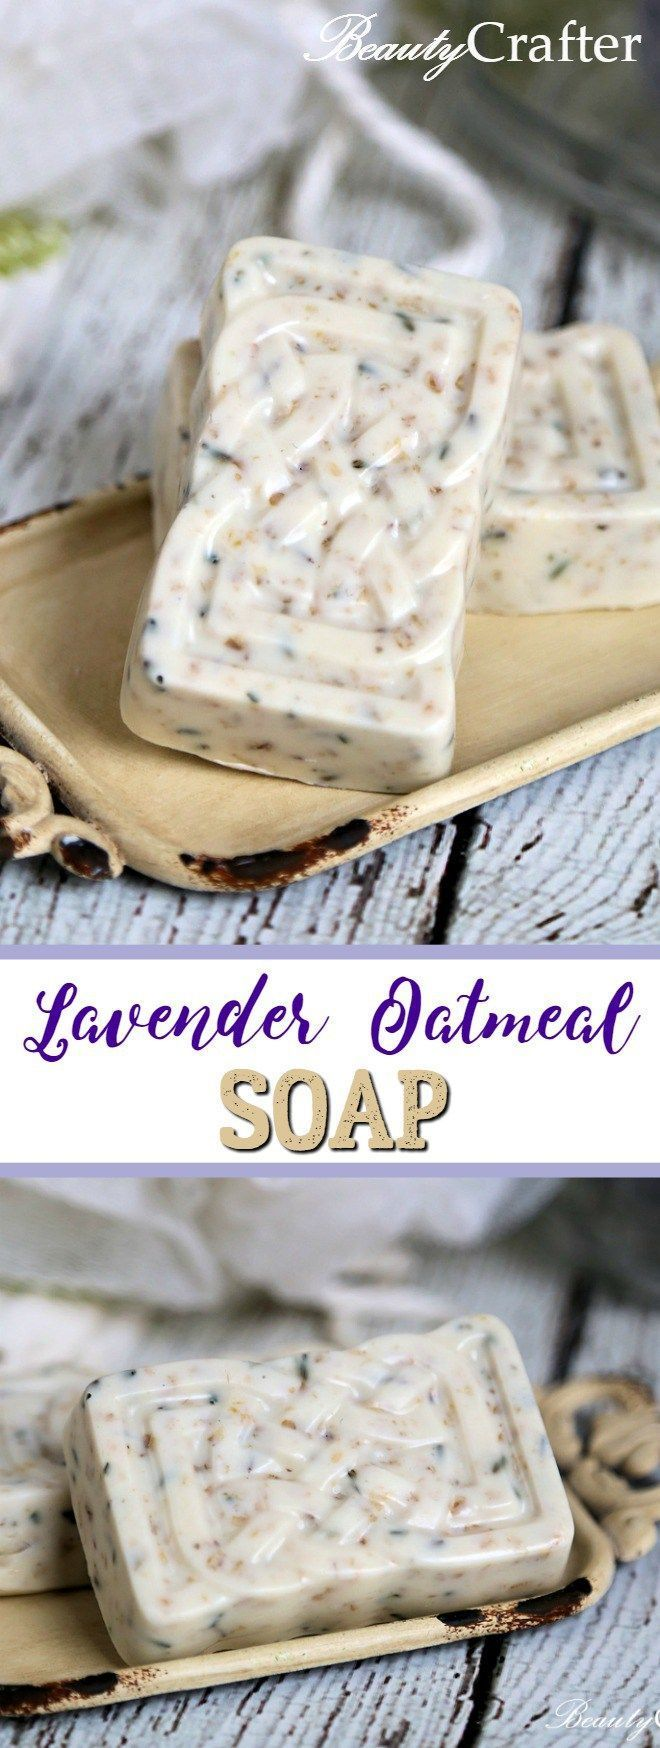 Homemade Lavender Oatmeal Soap Recipe #diycrafts #DIYgift #diychristmasgift #soap